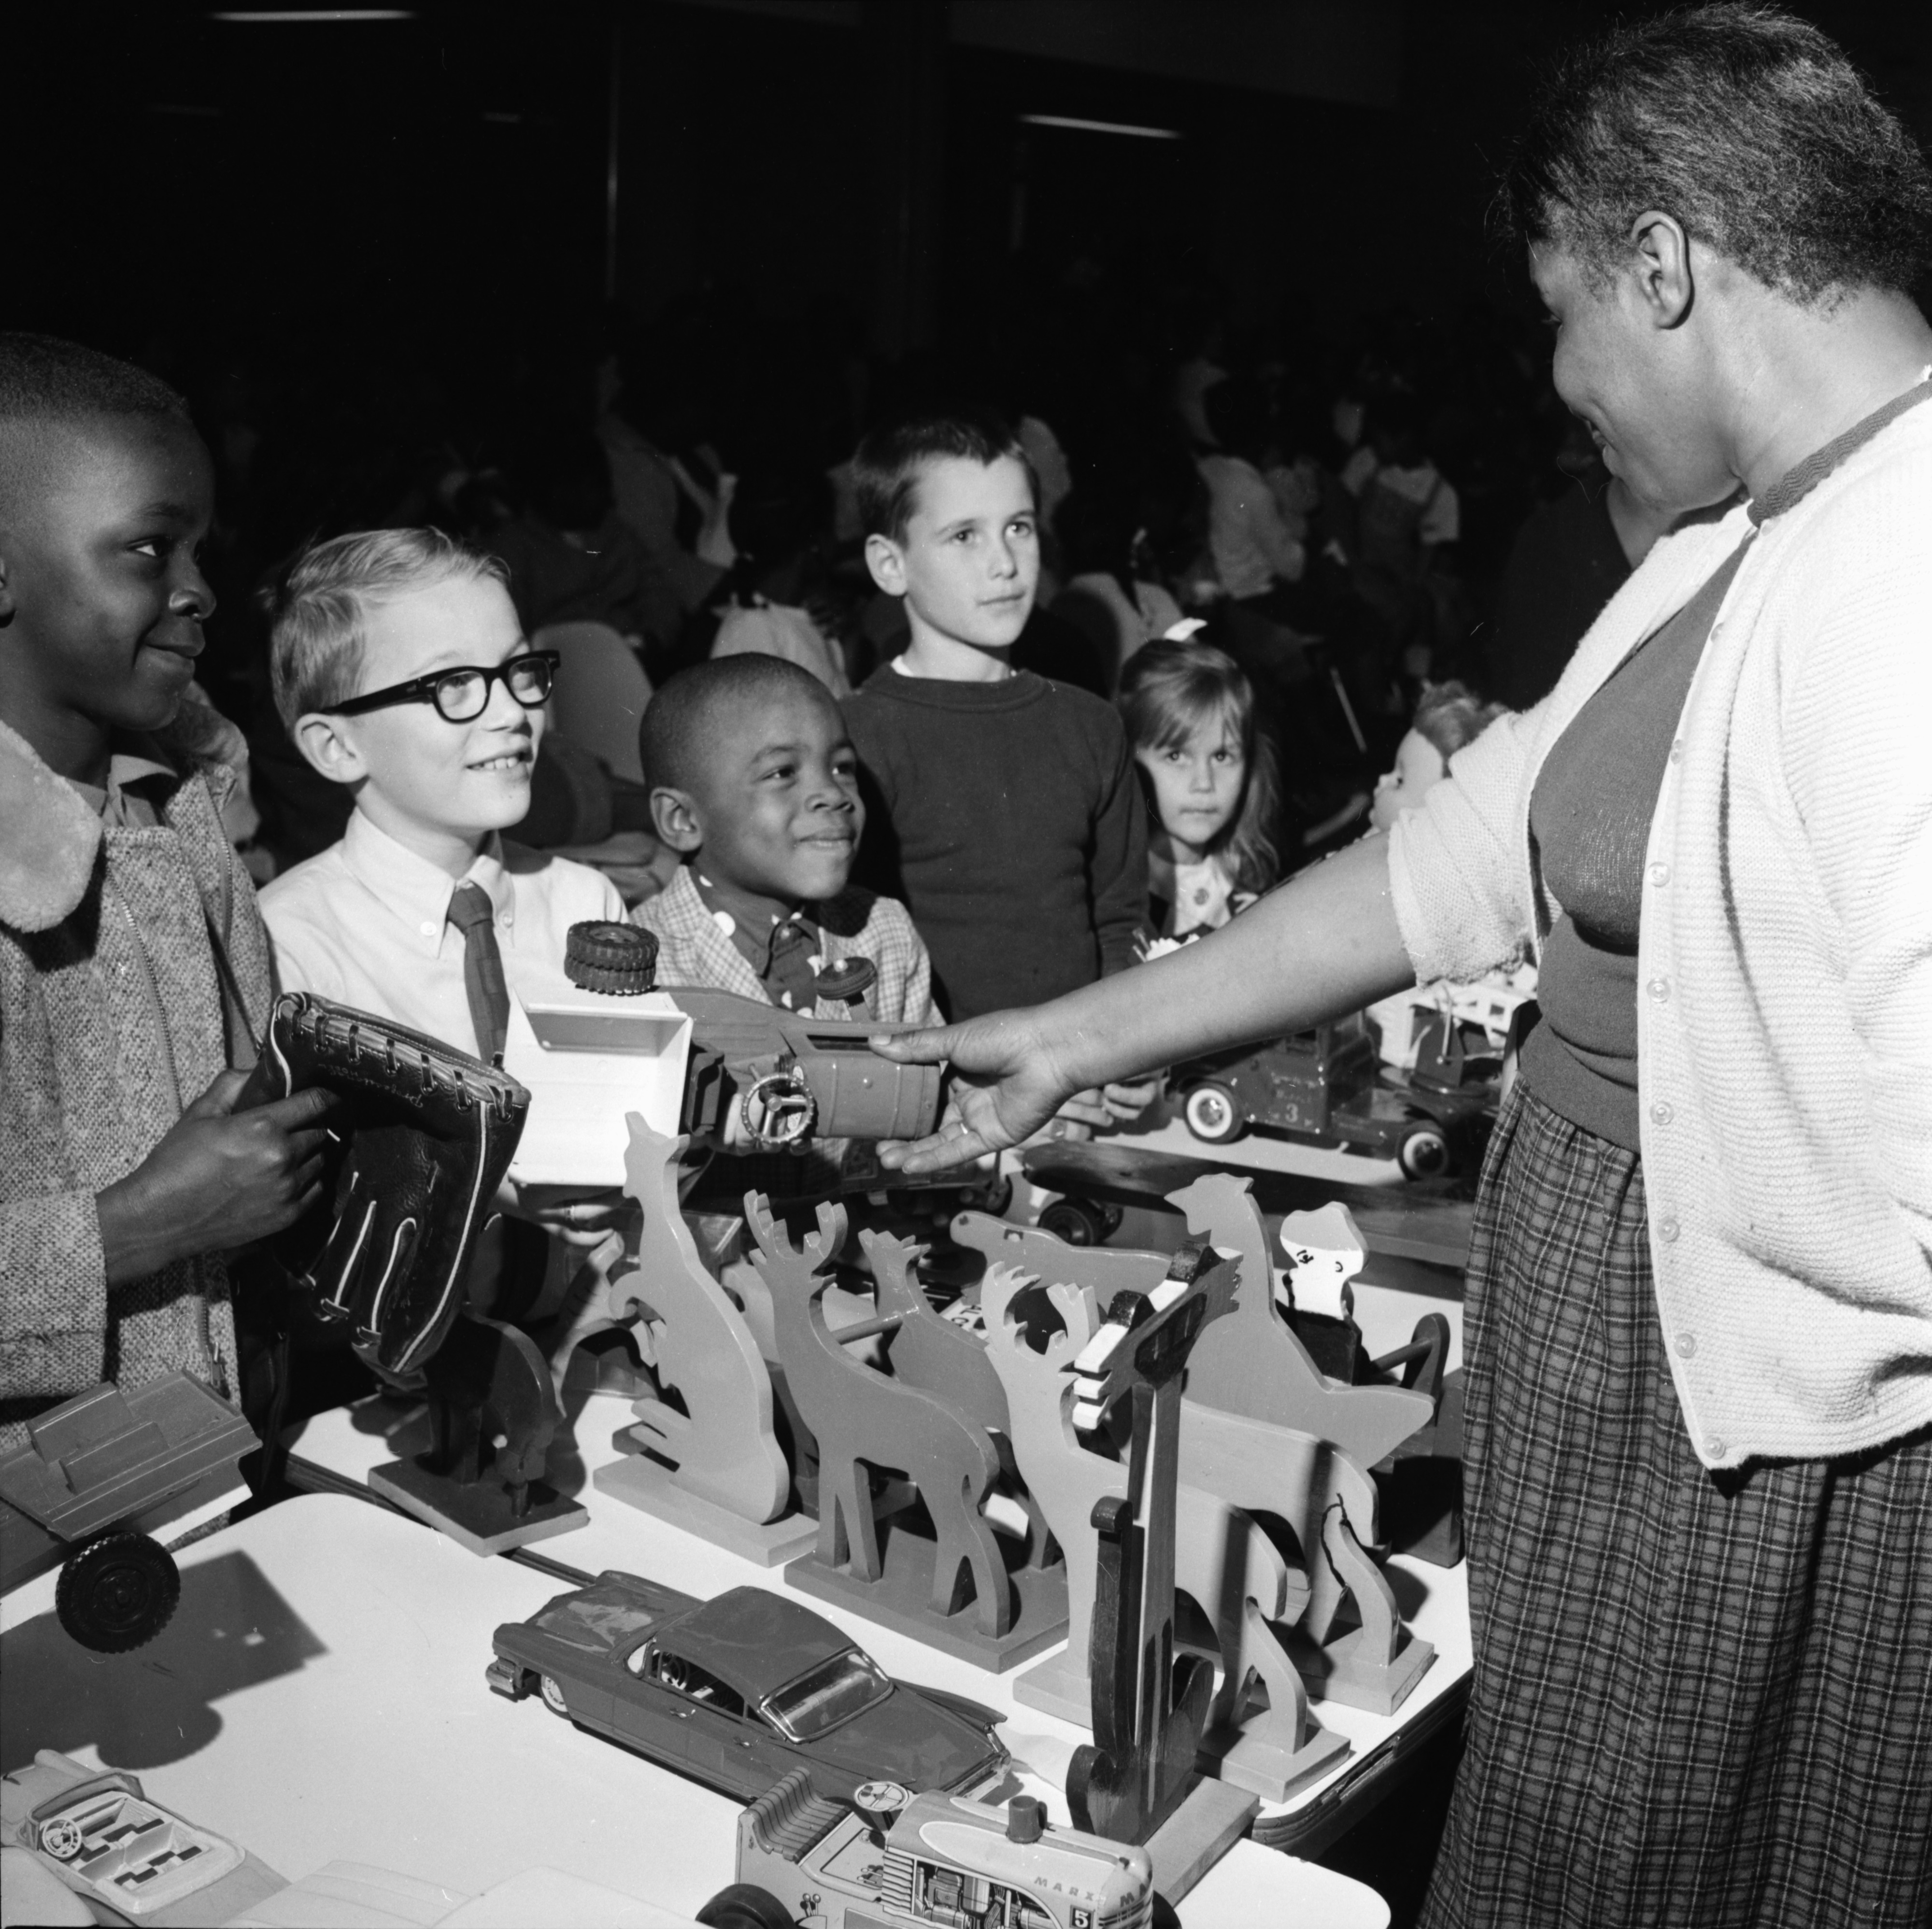 Children Receive Gifts from Marie Douglas at the Ann Arbor Community Center Christmas Party, December 1966 image